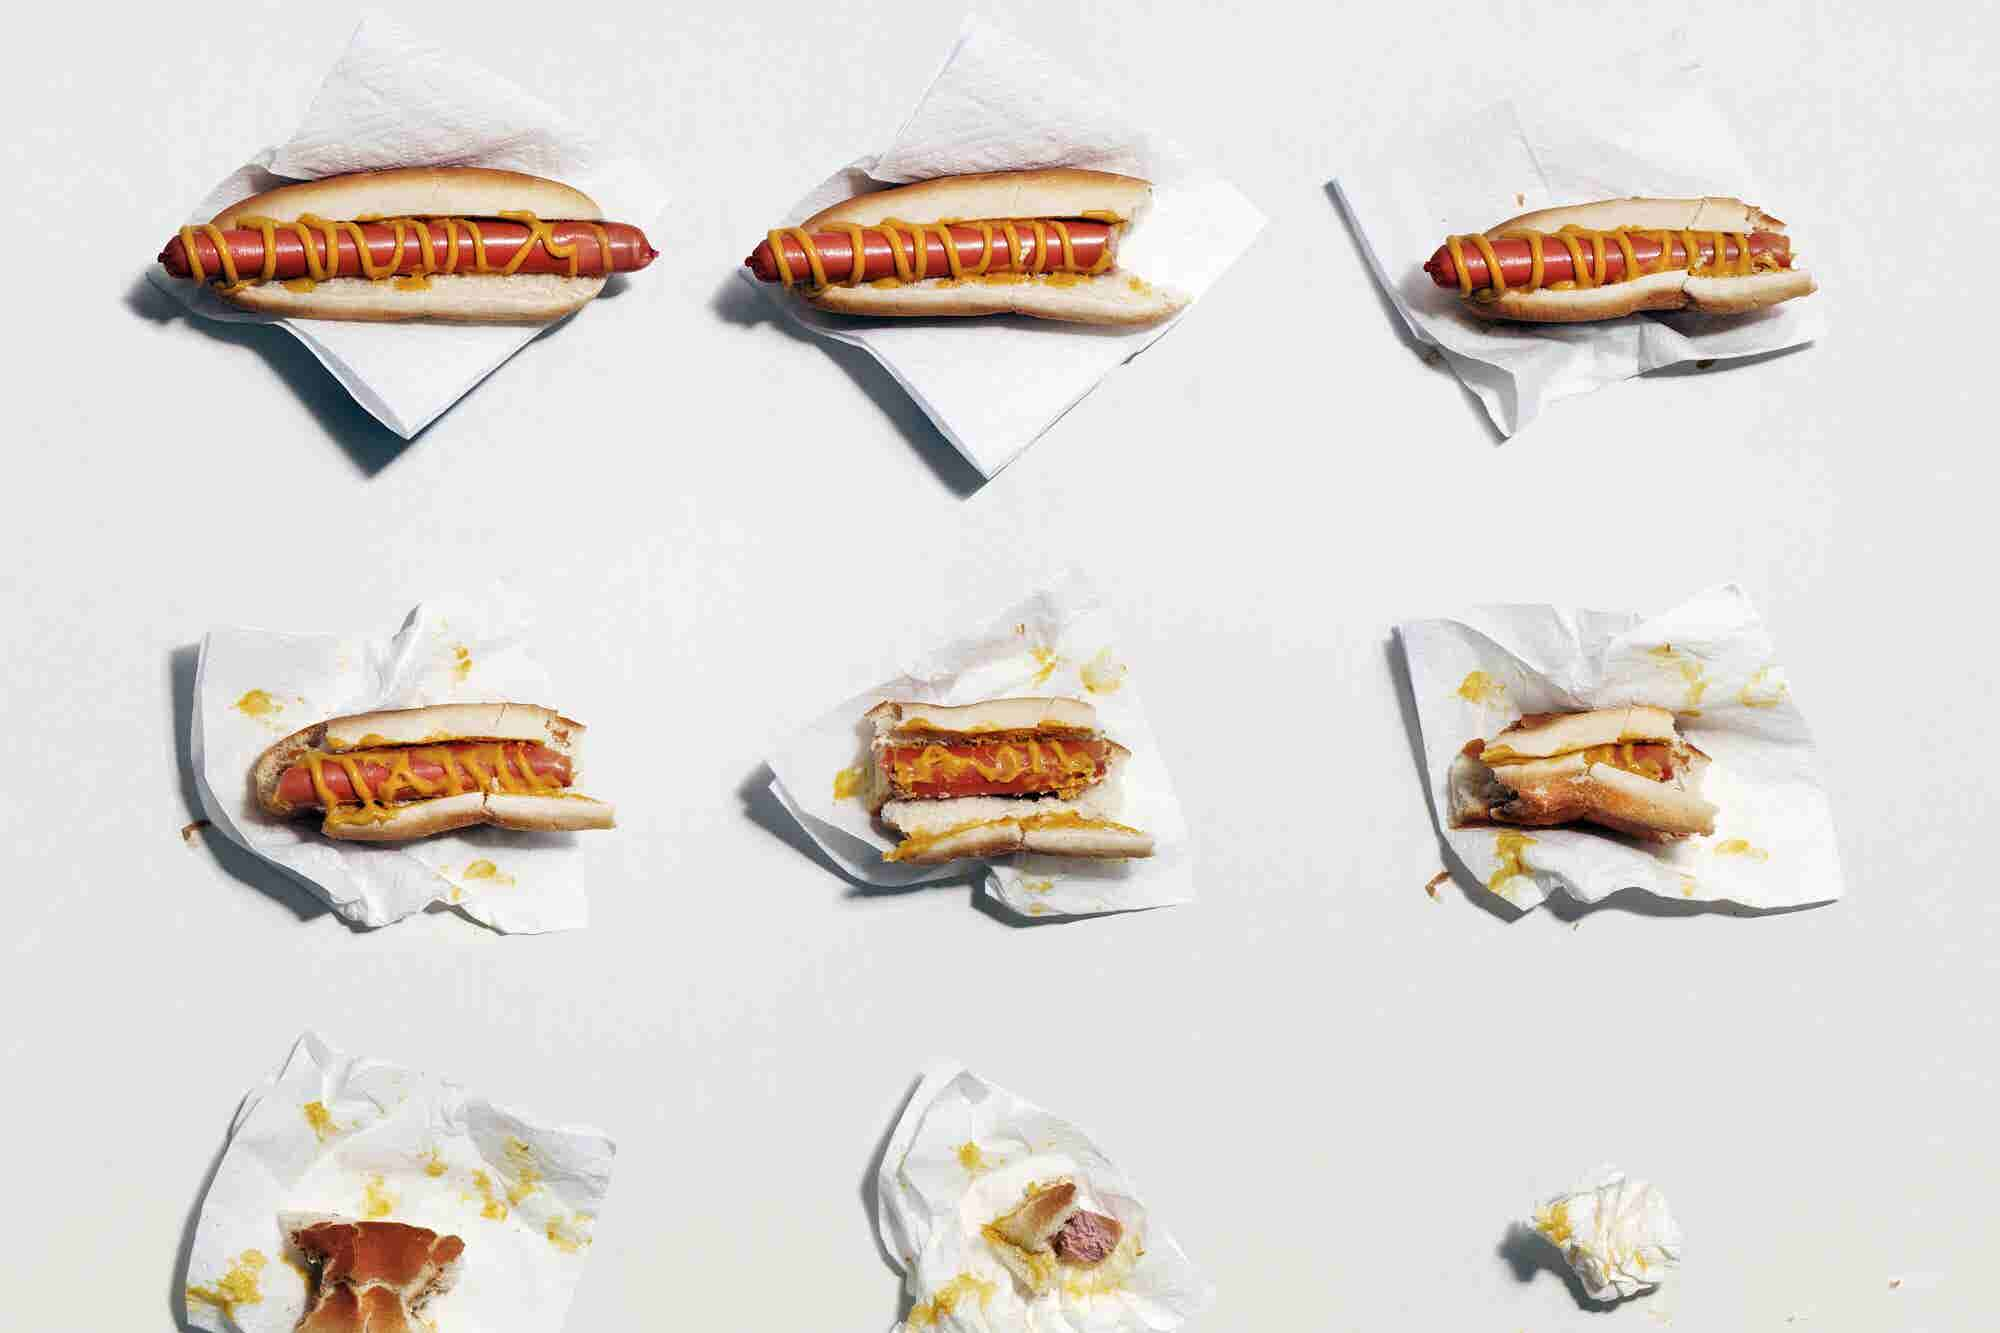 It's National Hot Dog Day! Here Are Our Top 3 Hot Dog Franchises.